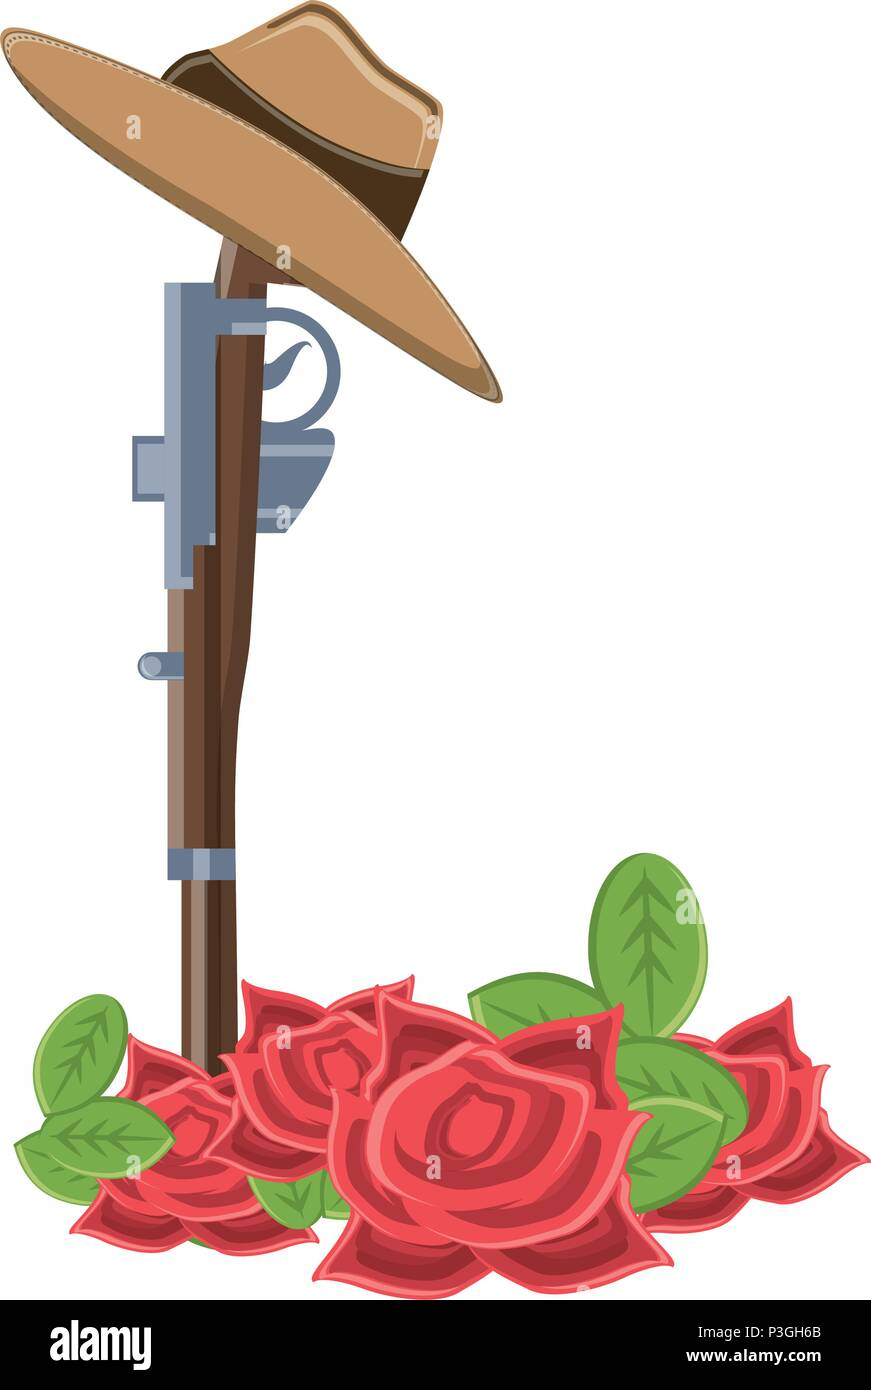 Anzac day design with poppy flowers and weapon over white background, vector illustration - Stock Vector